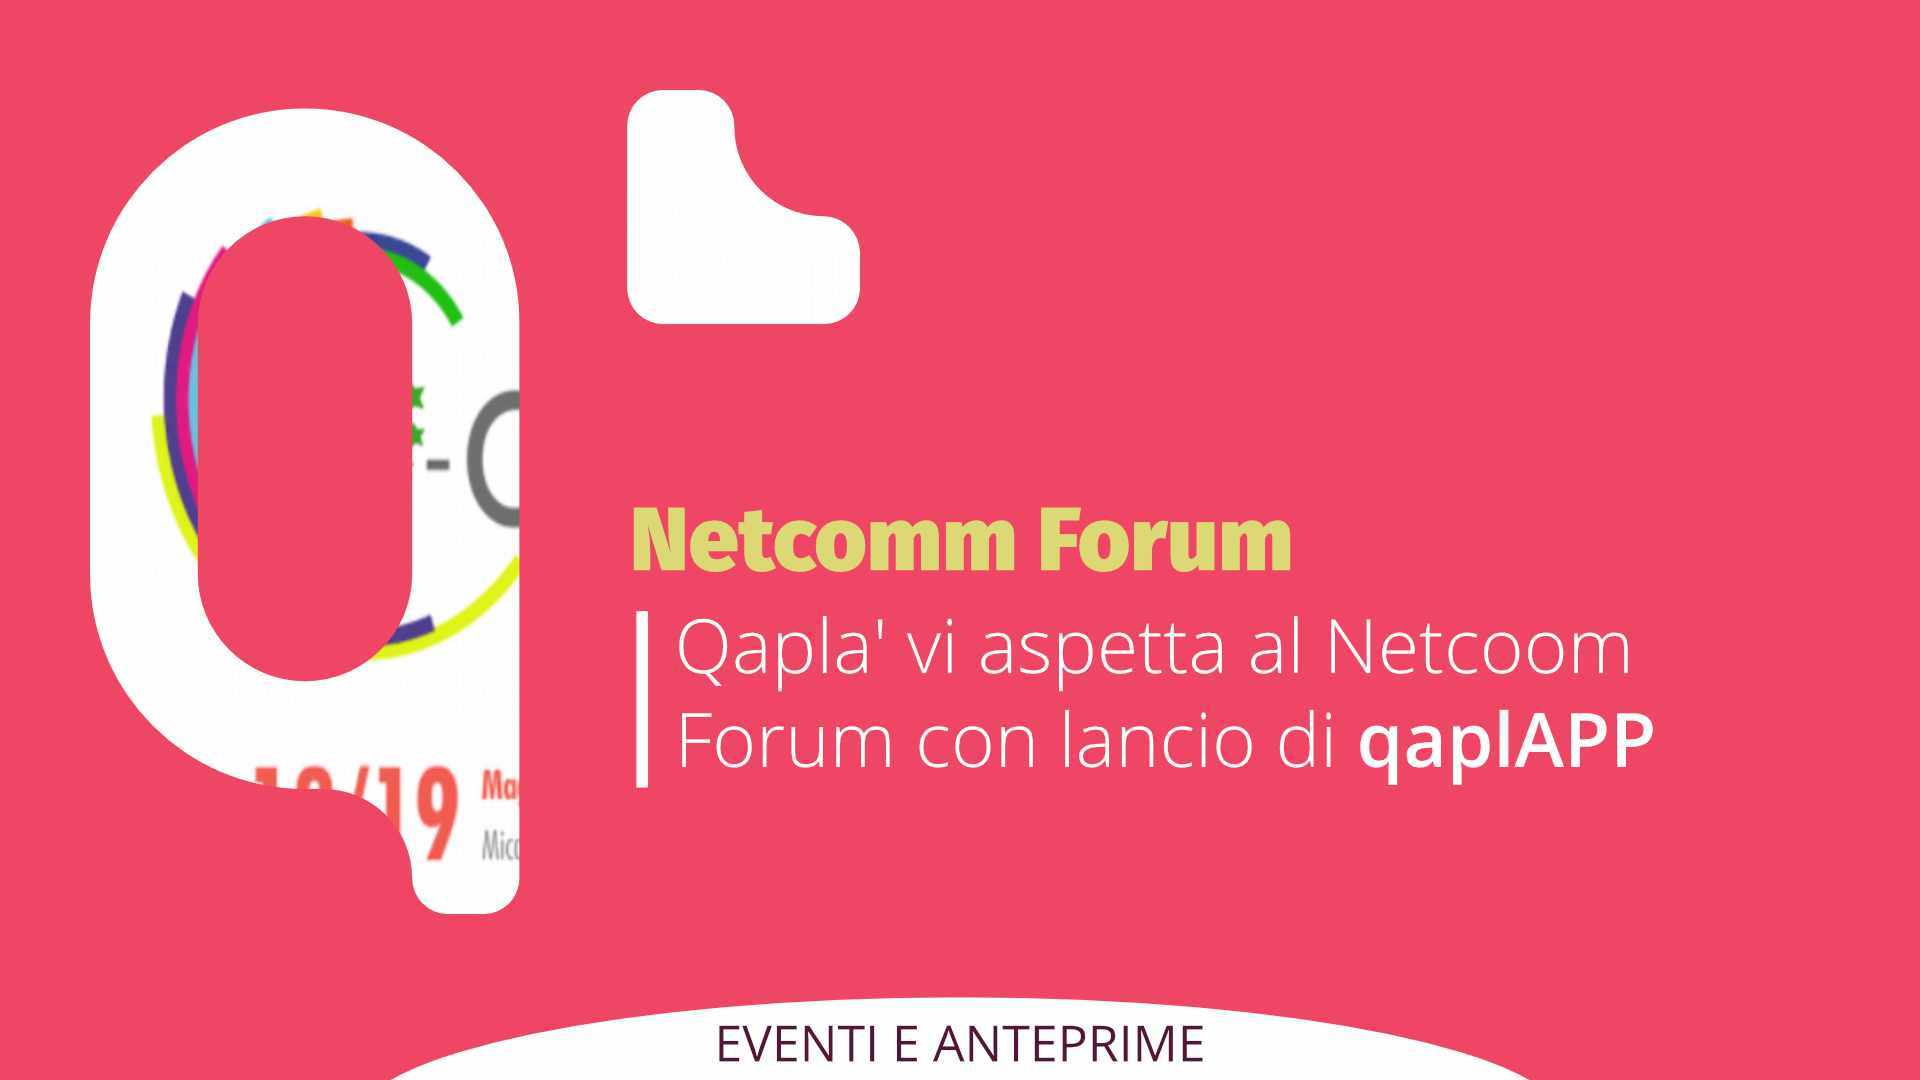 Qapla' all'eCommerce Netcomm Forum